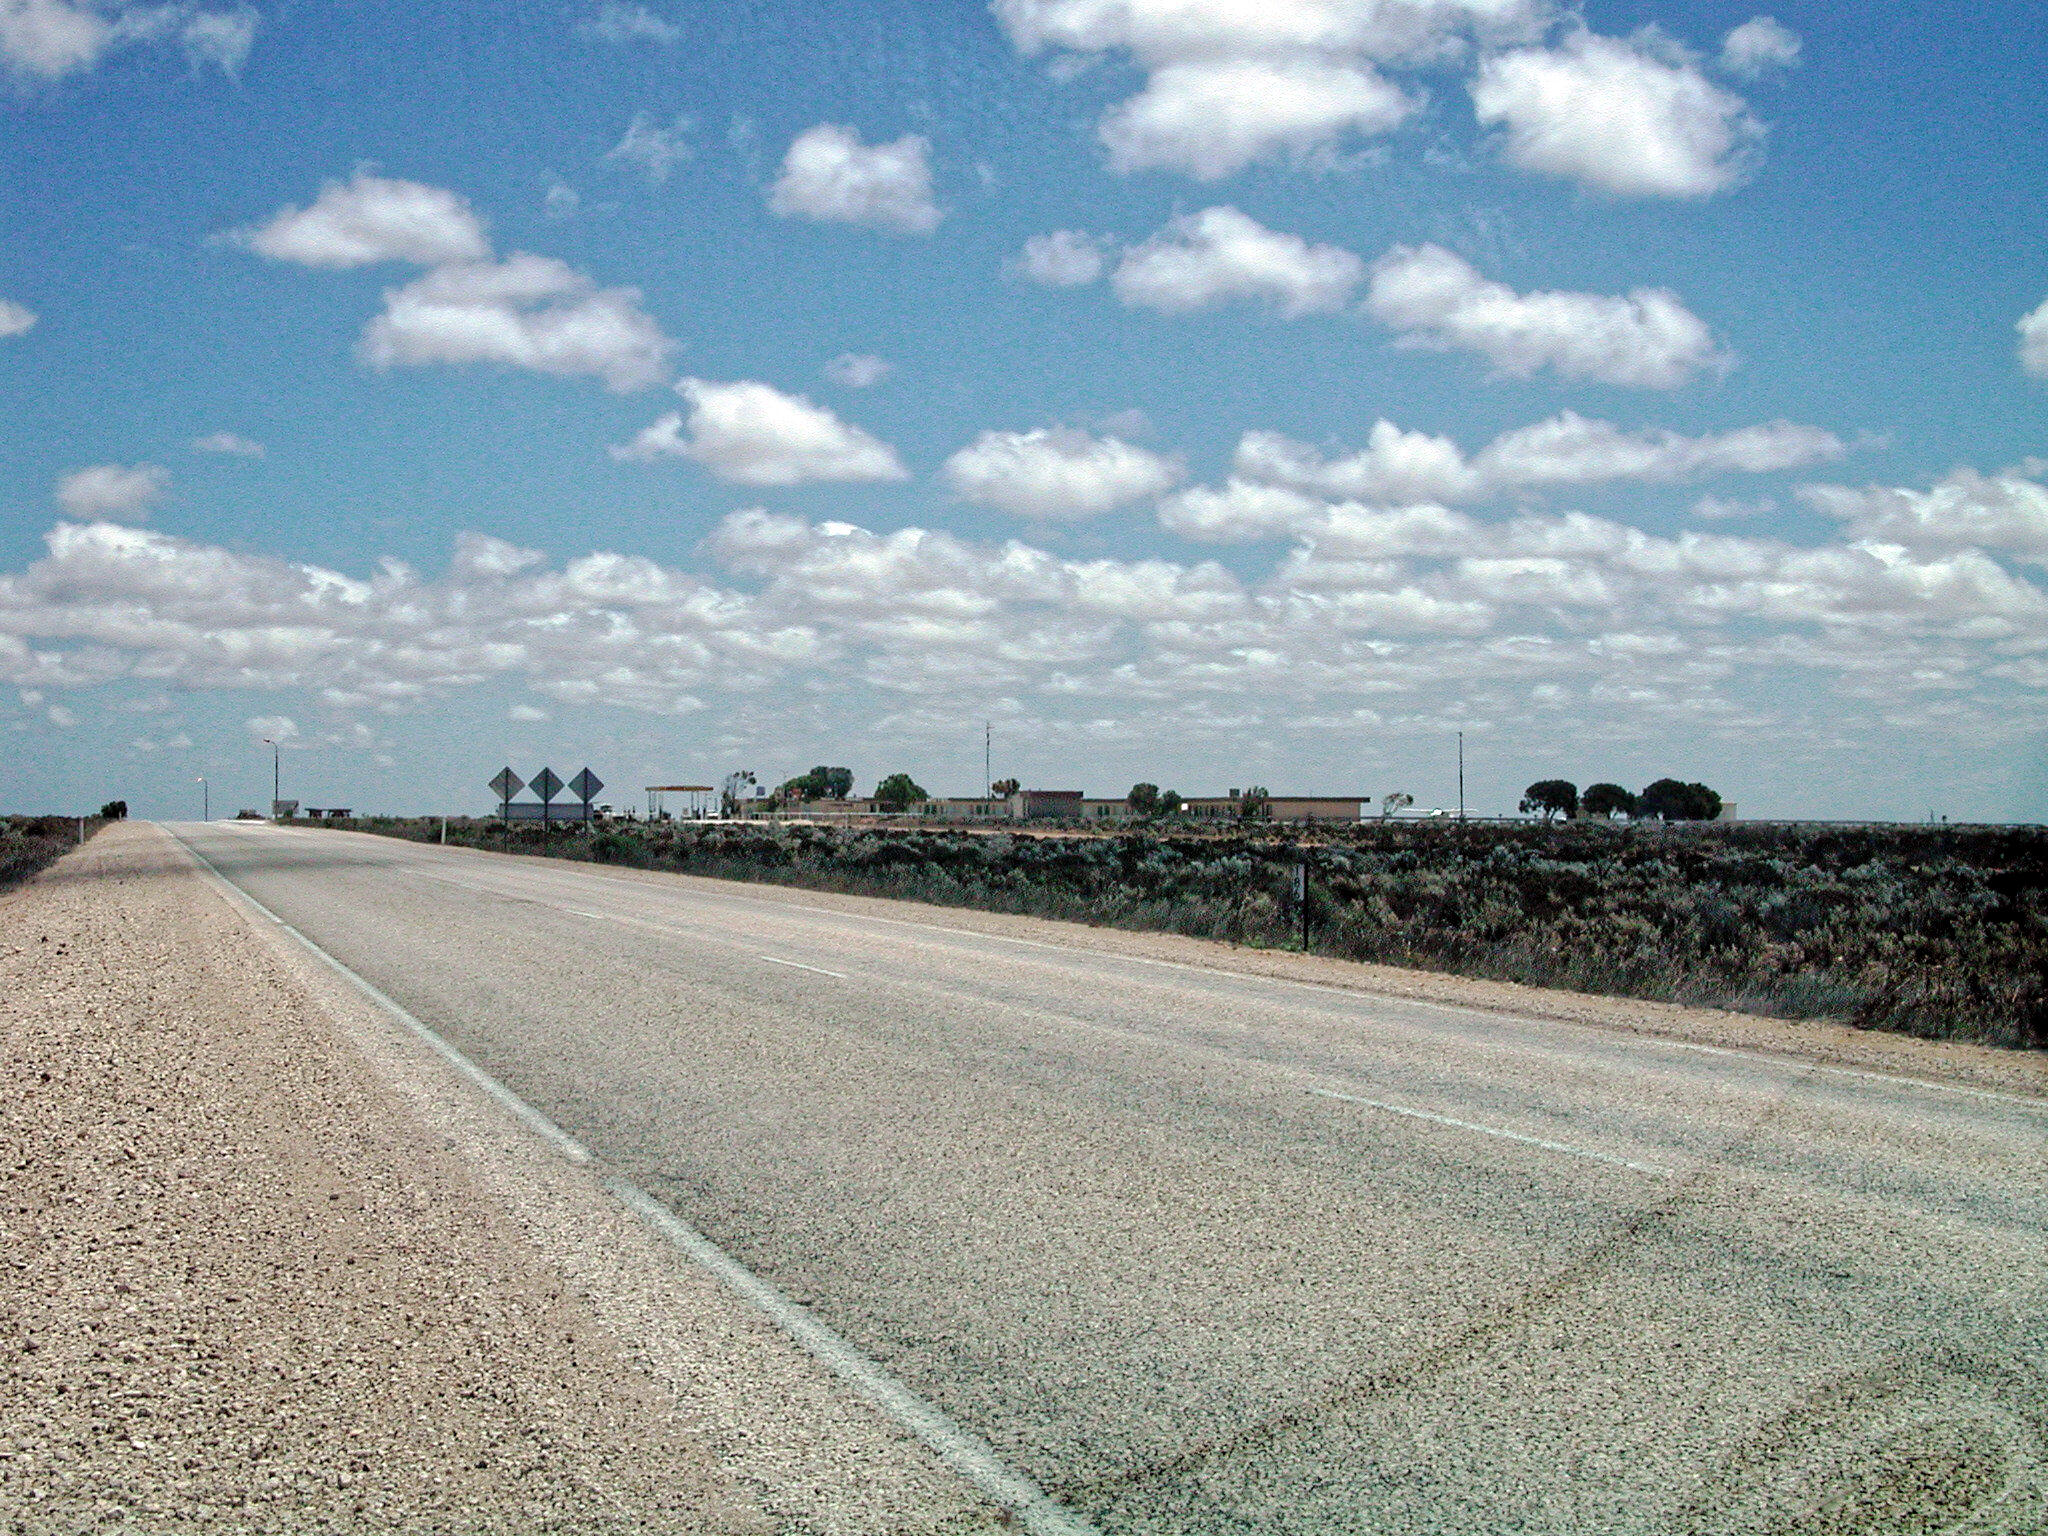 This should be nullarbor-roadhouse-1.jpeg.  Is it missing?